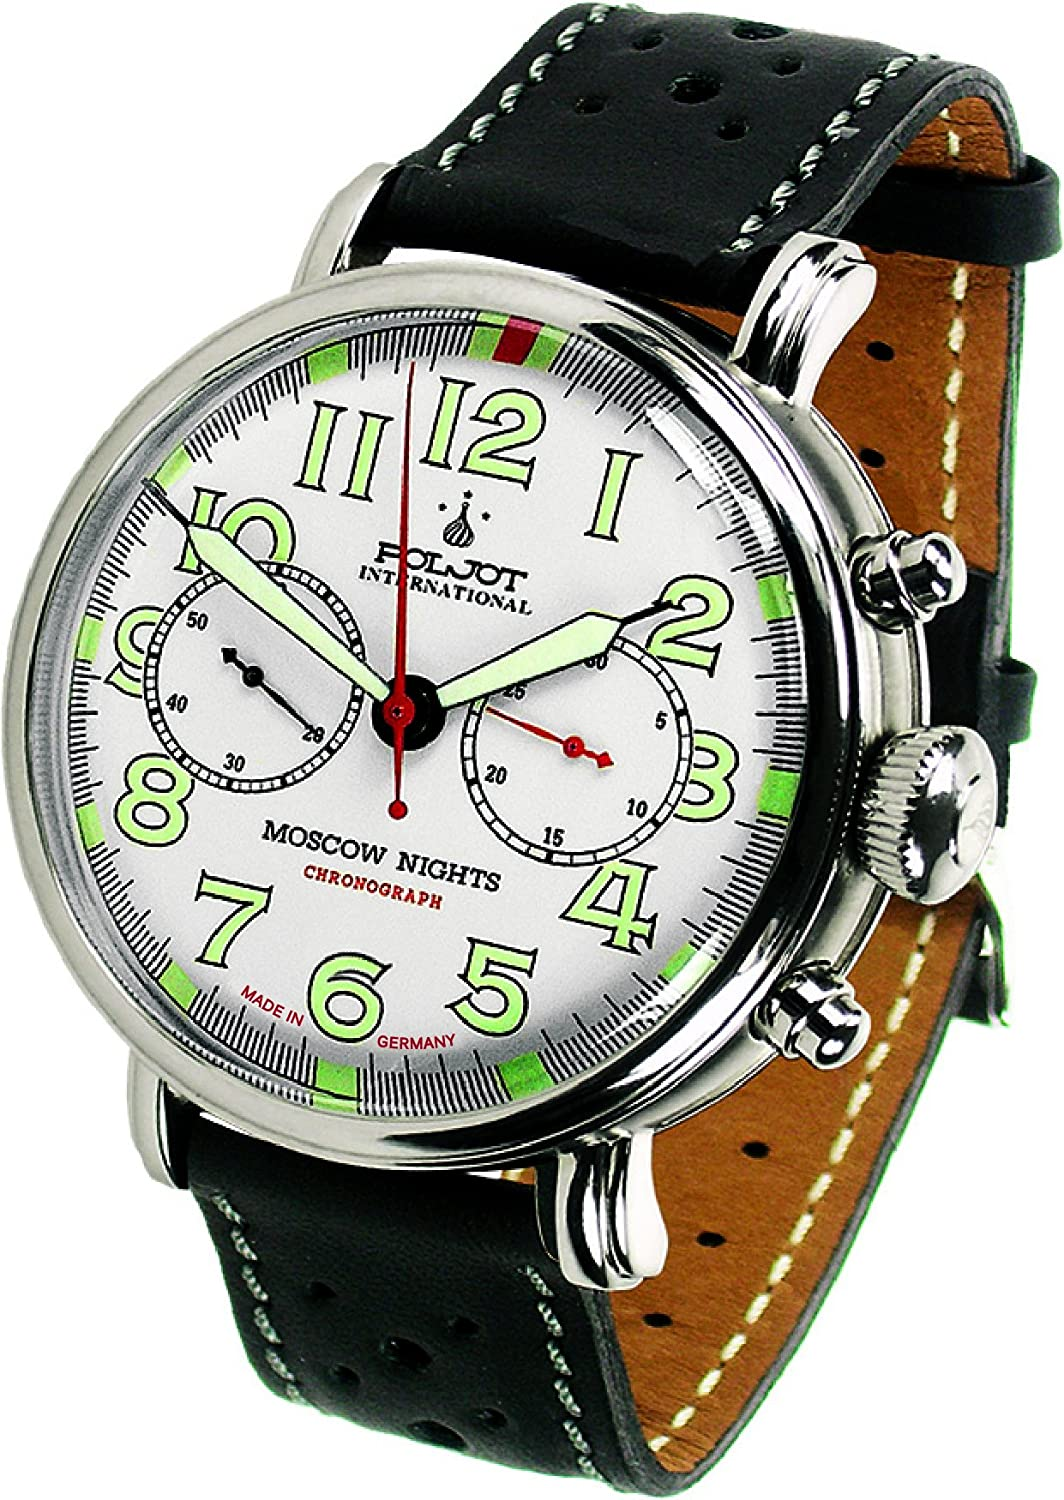 POLJOT Int Chronograph Moscow Nights Mechanische Russische Uhr Lederband